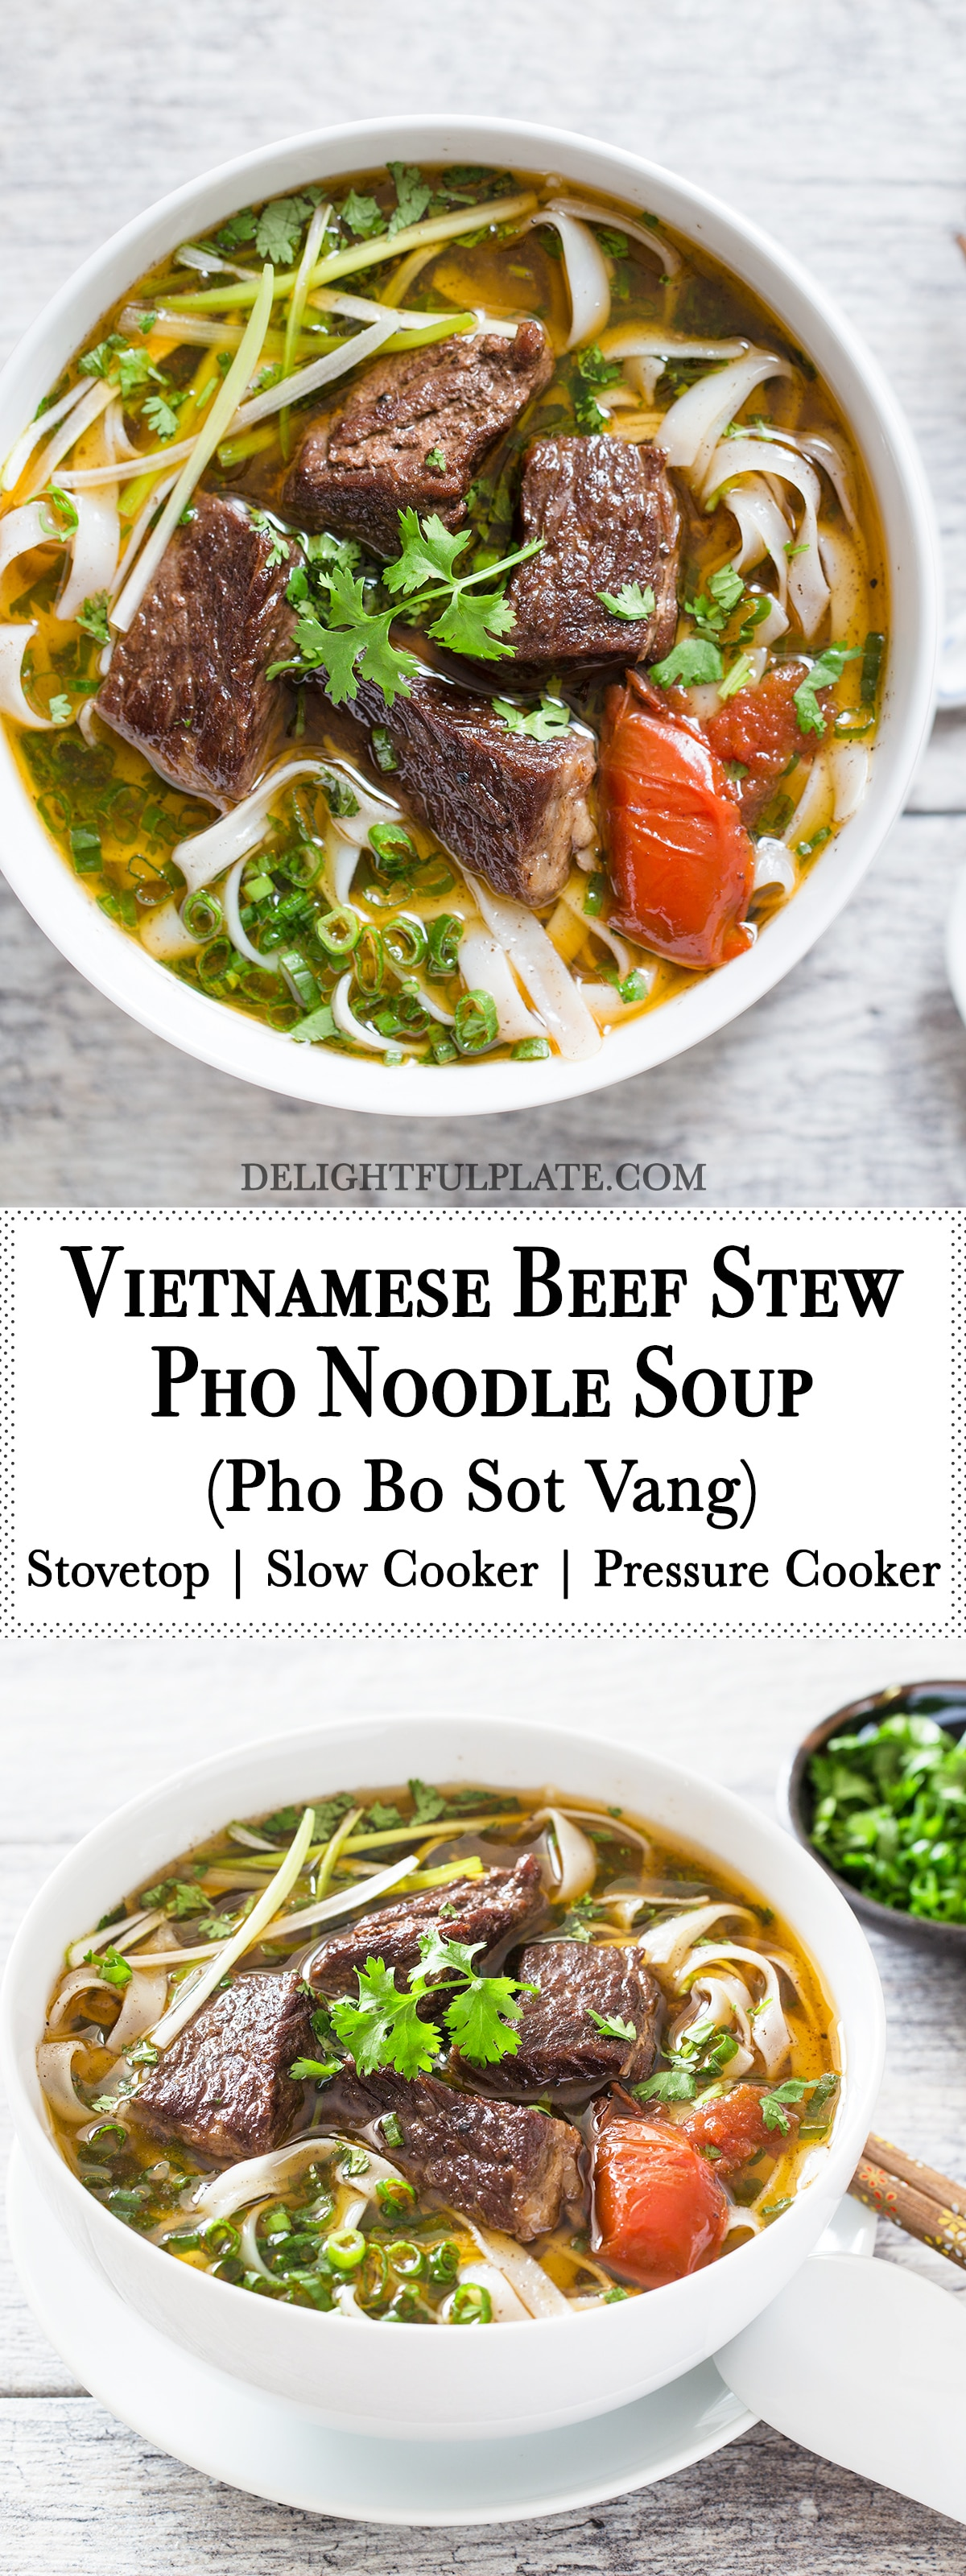 Vietnamese beef stew pho noodle soup (Pho bo sot vang) is so hearty and comforting. You can make it on stovetop, in a slow cooker or a pressure cooker.